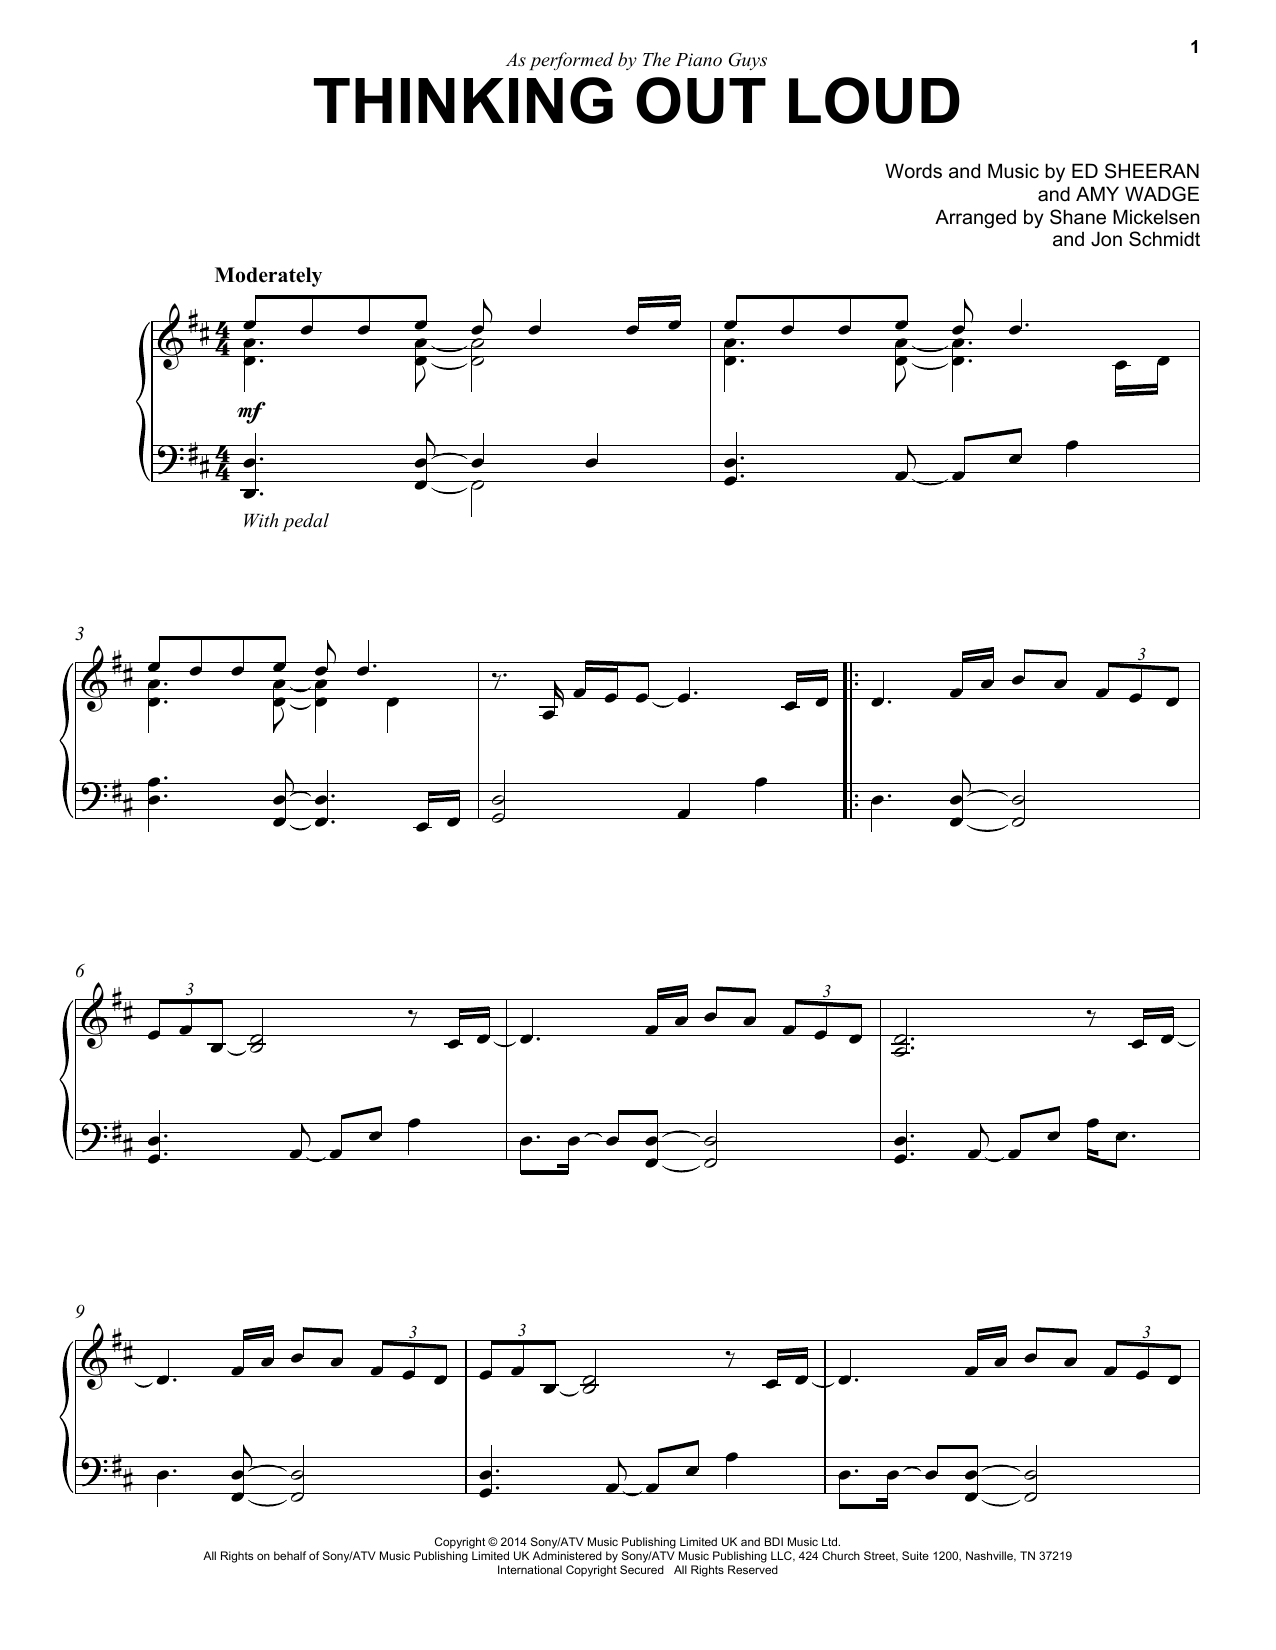 Thinking out loud sheet music direct